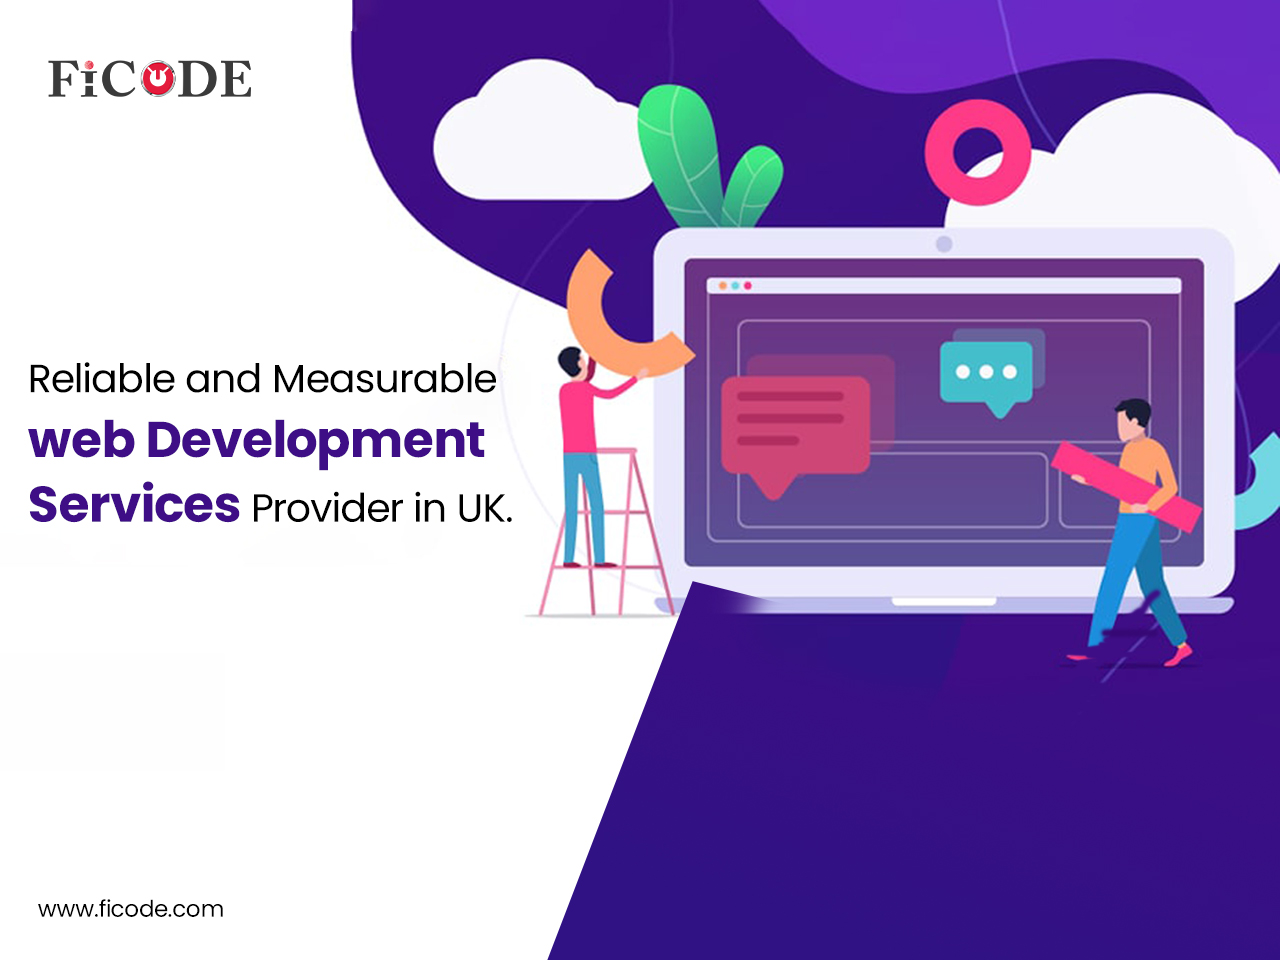 Reliable and measurable web development services provider in UK.